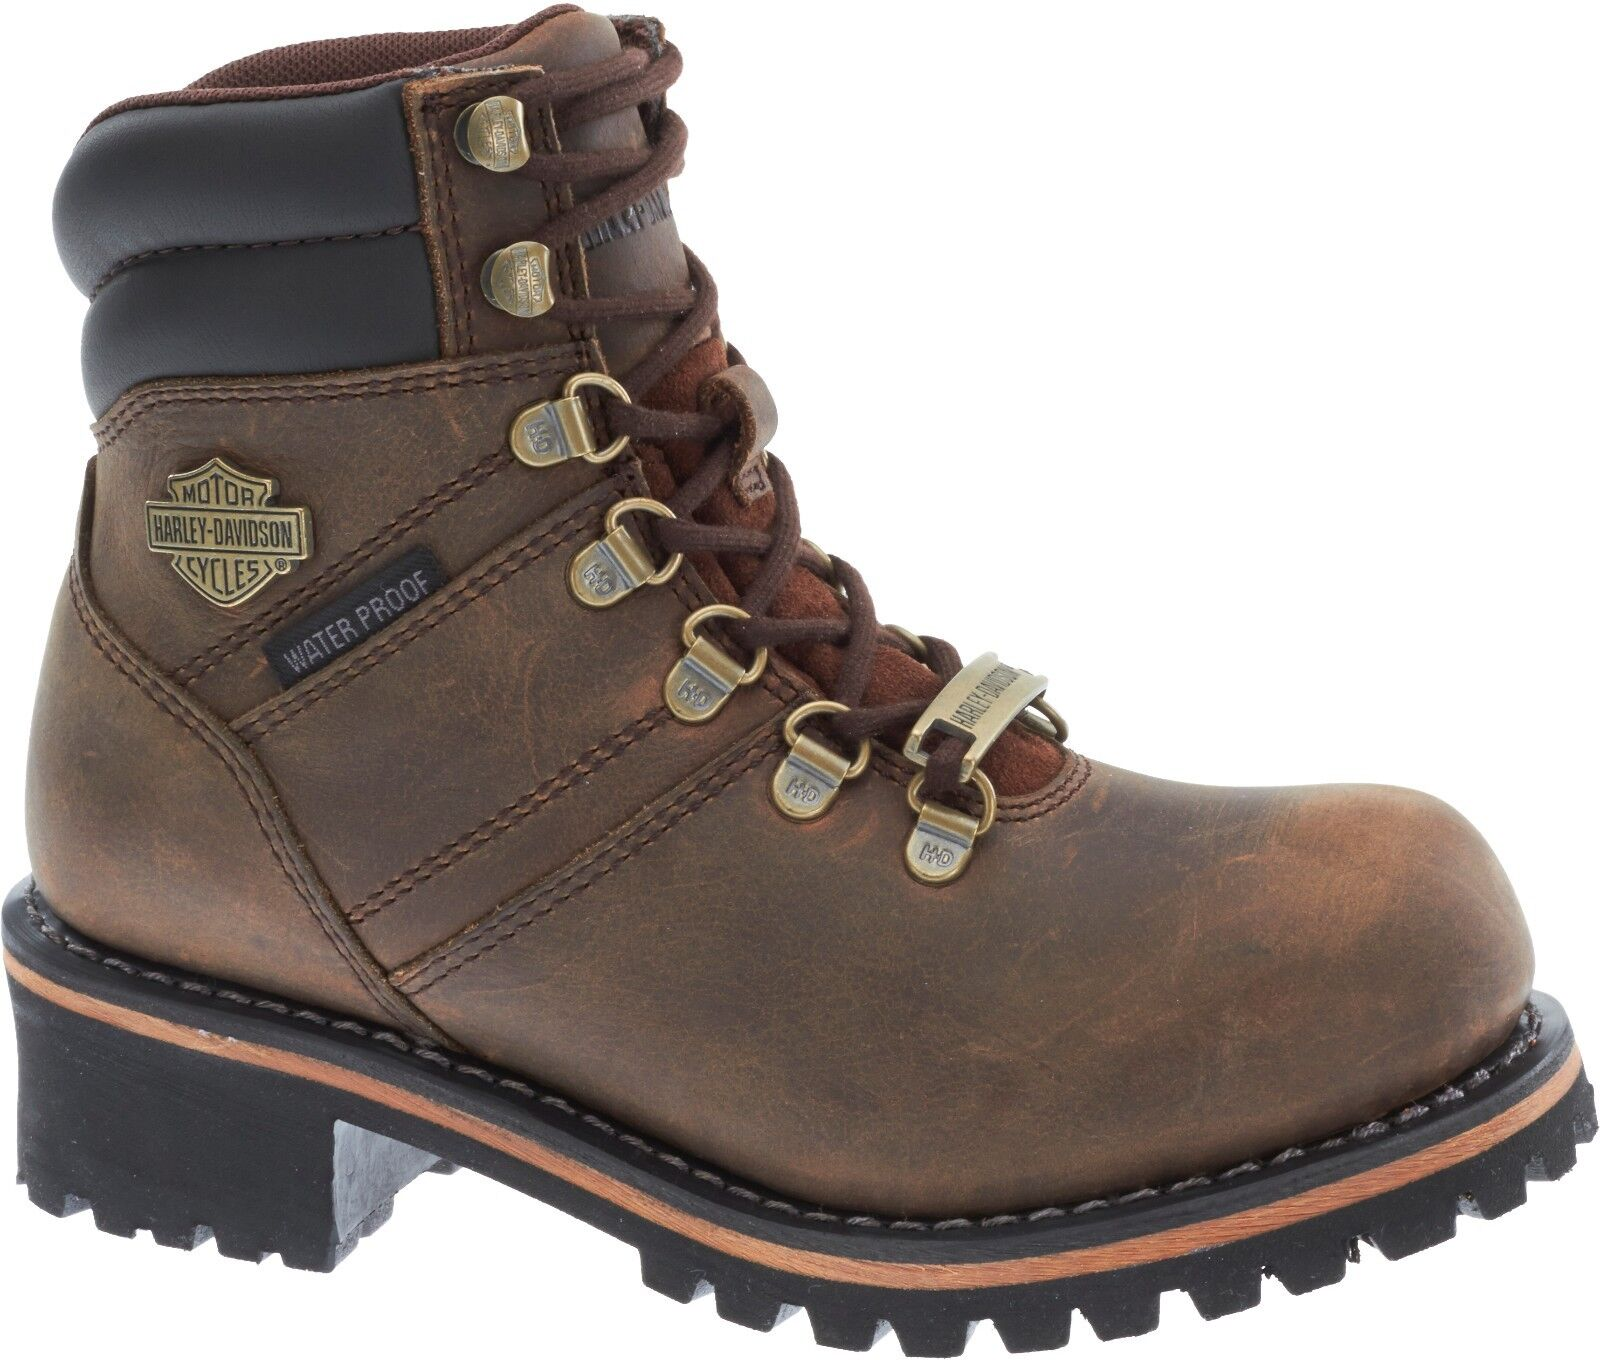 Harley-Davidson Women's Ladson Waterproof Brown Leather Motorcycle Boot D87104